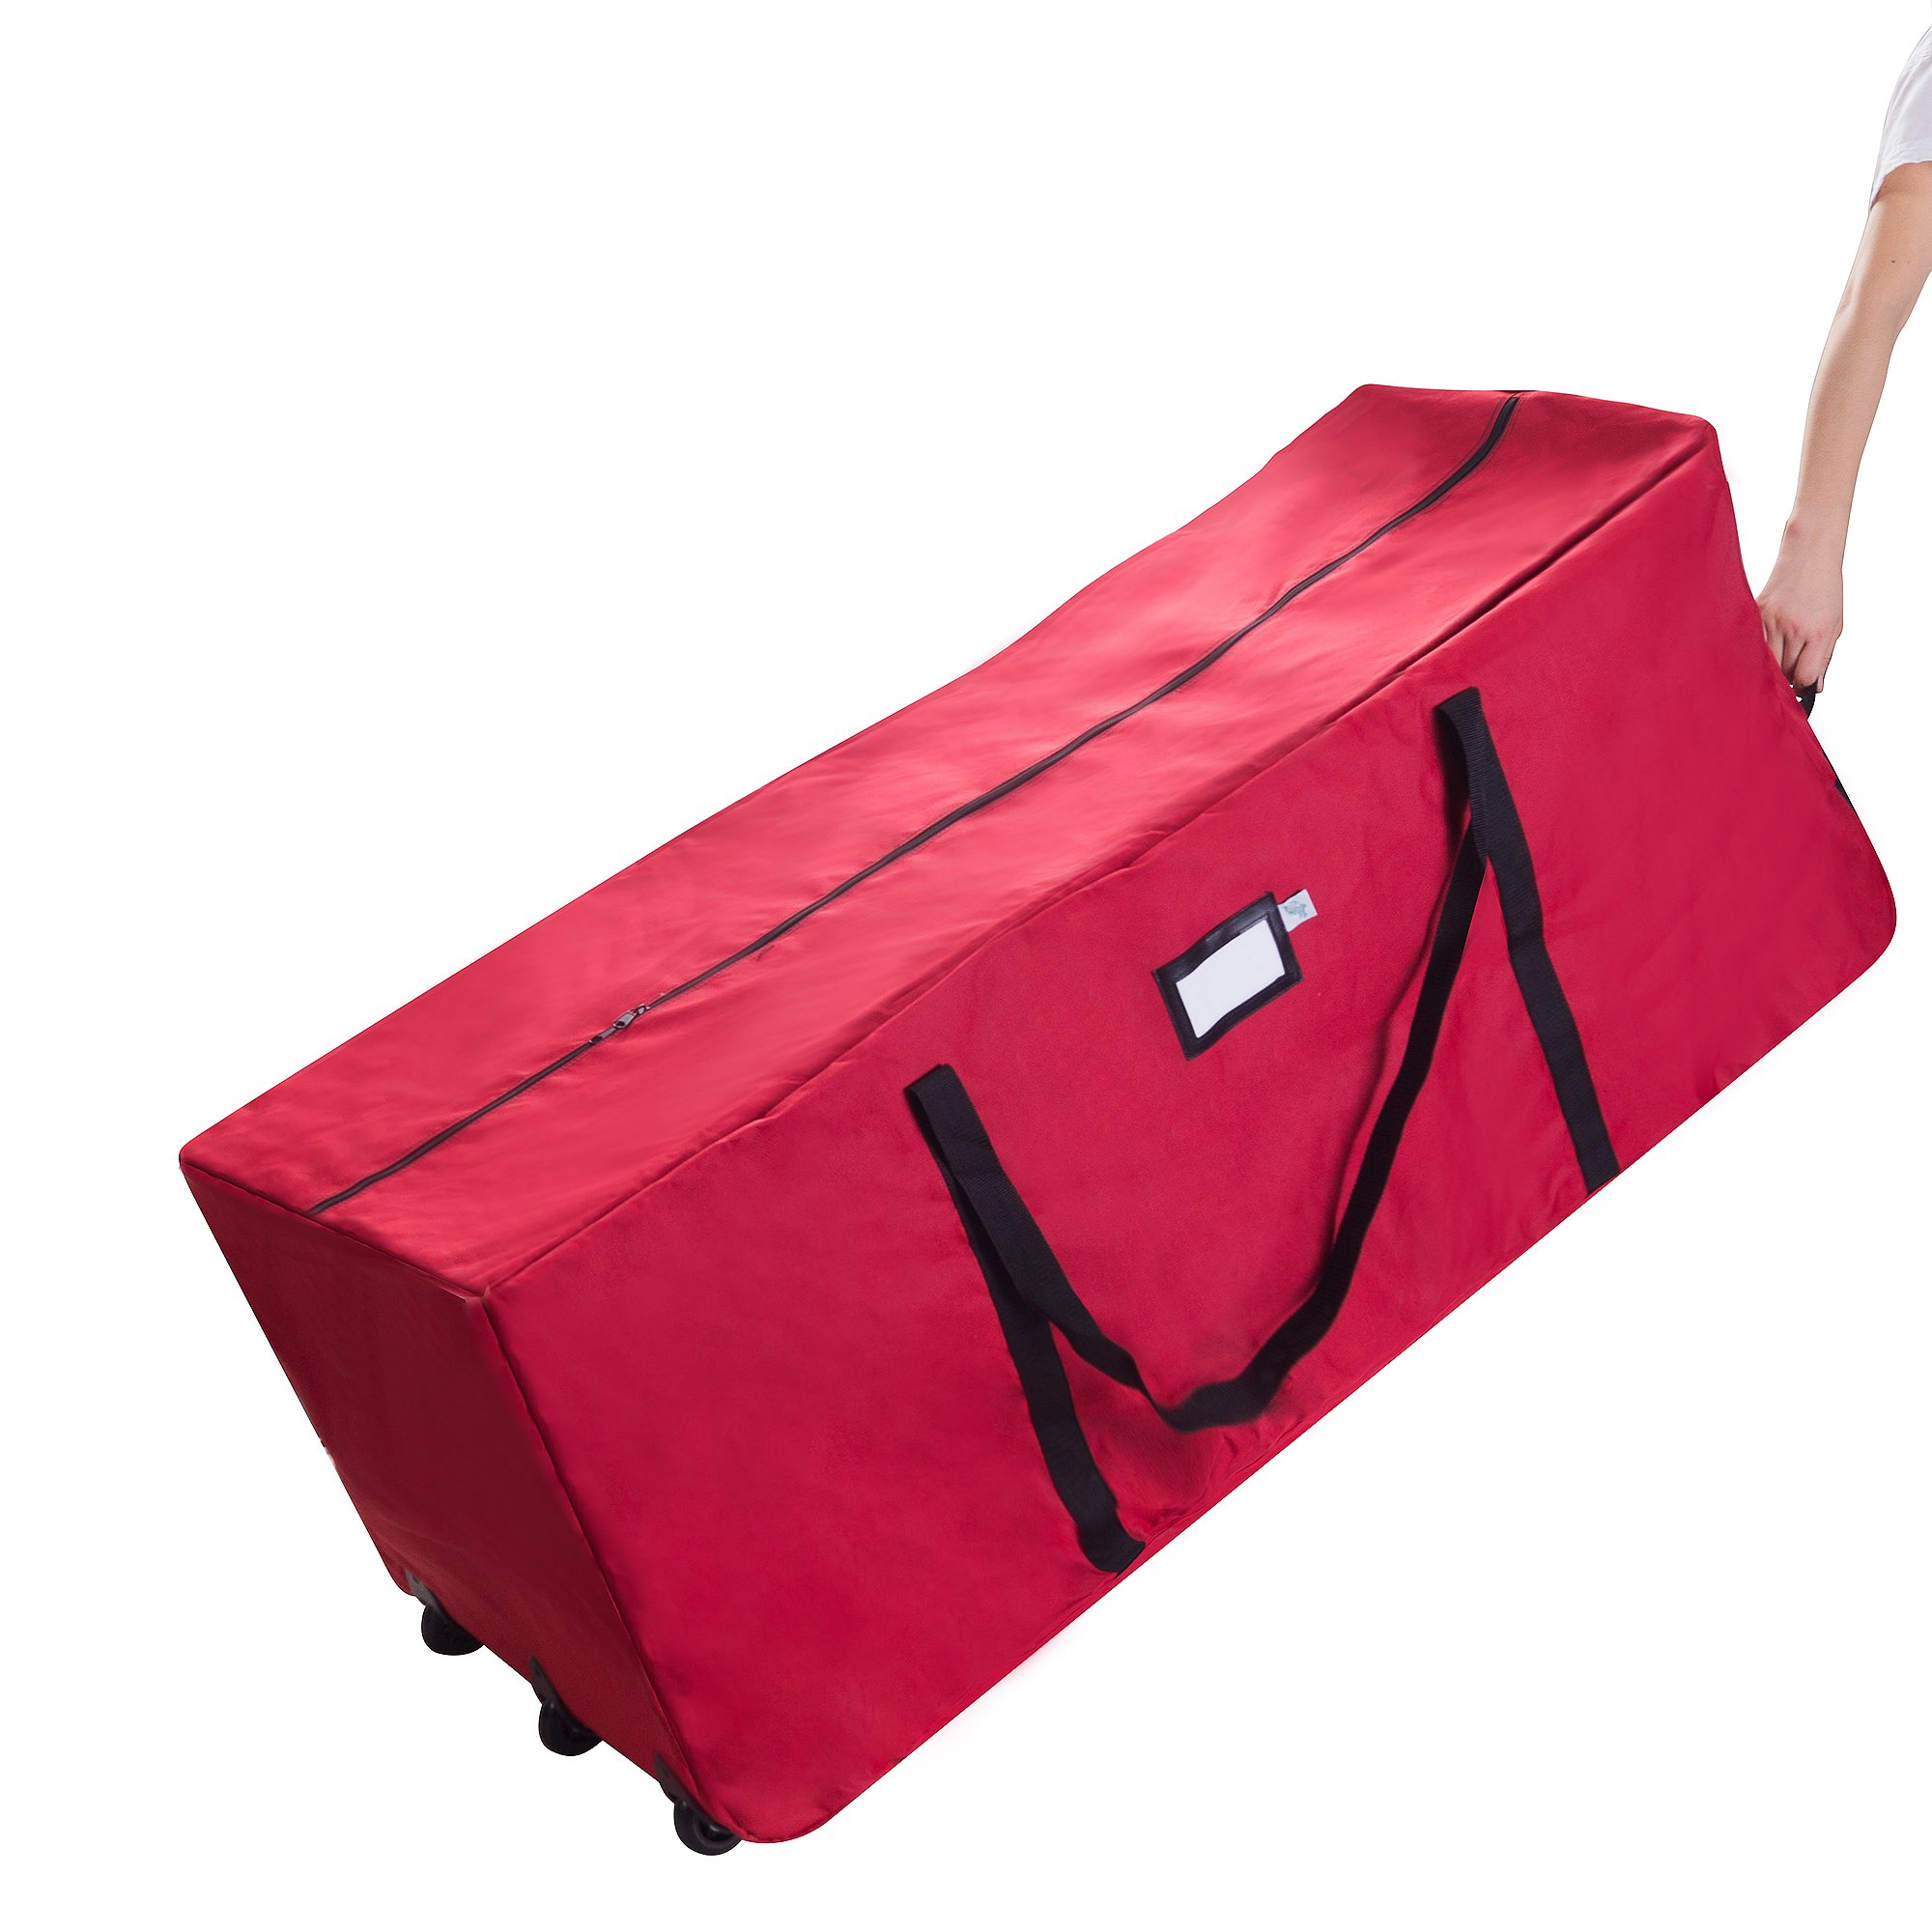 Elf Stor Premium Red Rolling Duffel Bag Style Christmas Tree Storage Bag- Holds a 12 Foot Artificial Tree